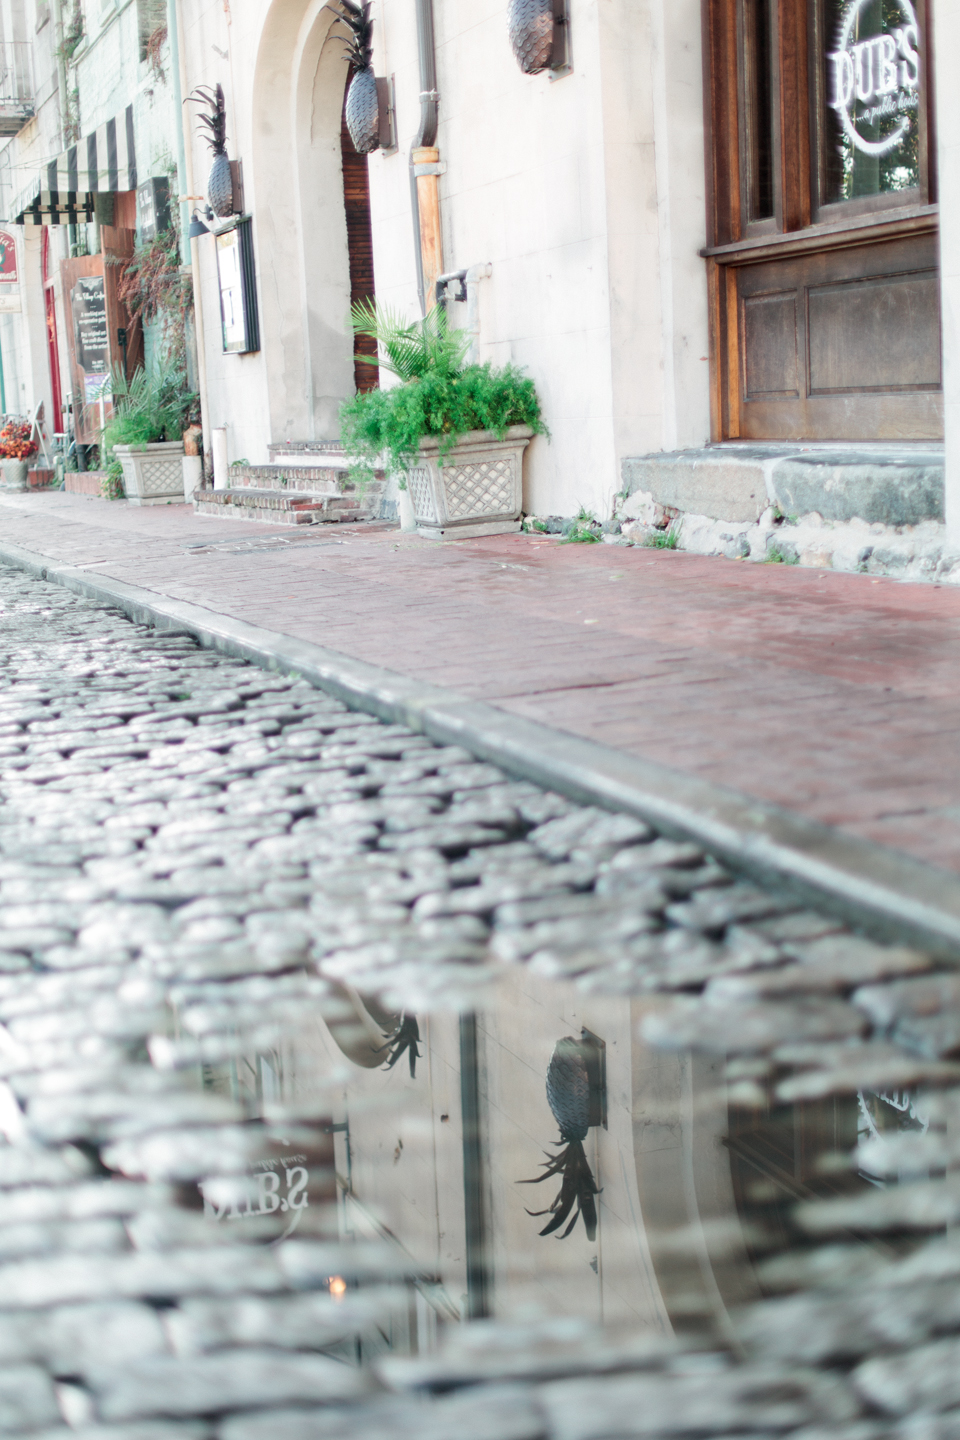 Image of a cobblestone street with a puddle of water on East River Street in historic downtown Savannah, Georgia.